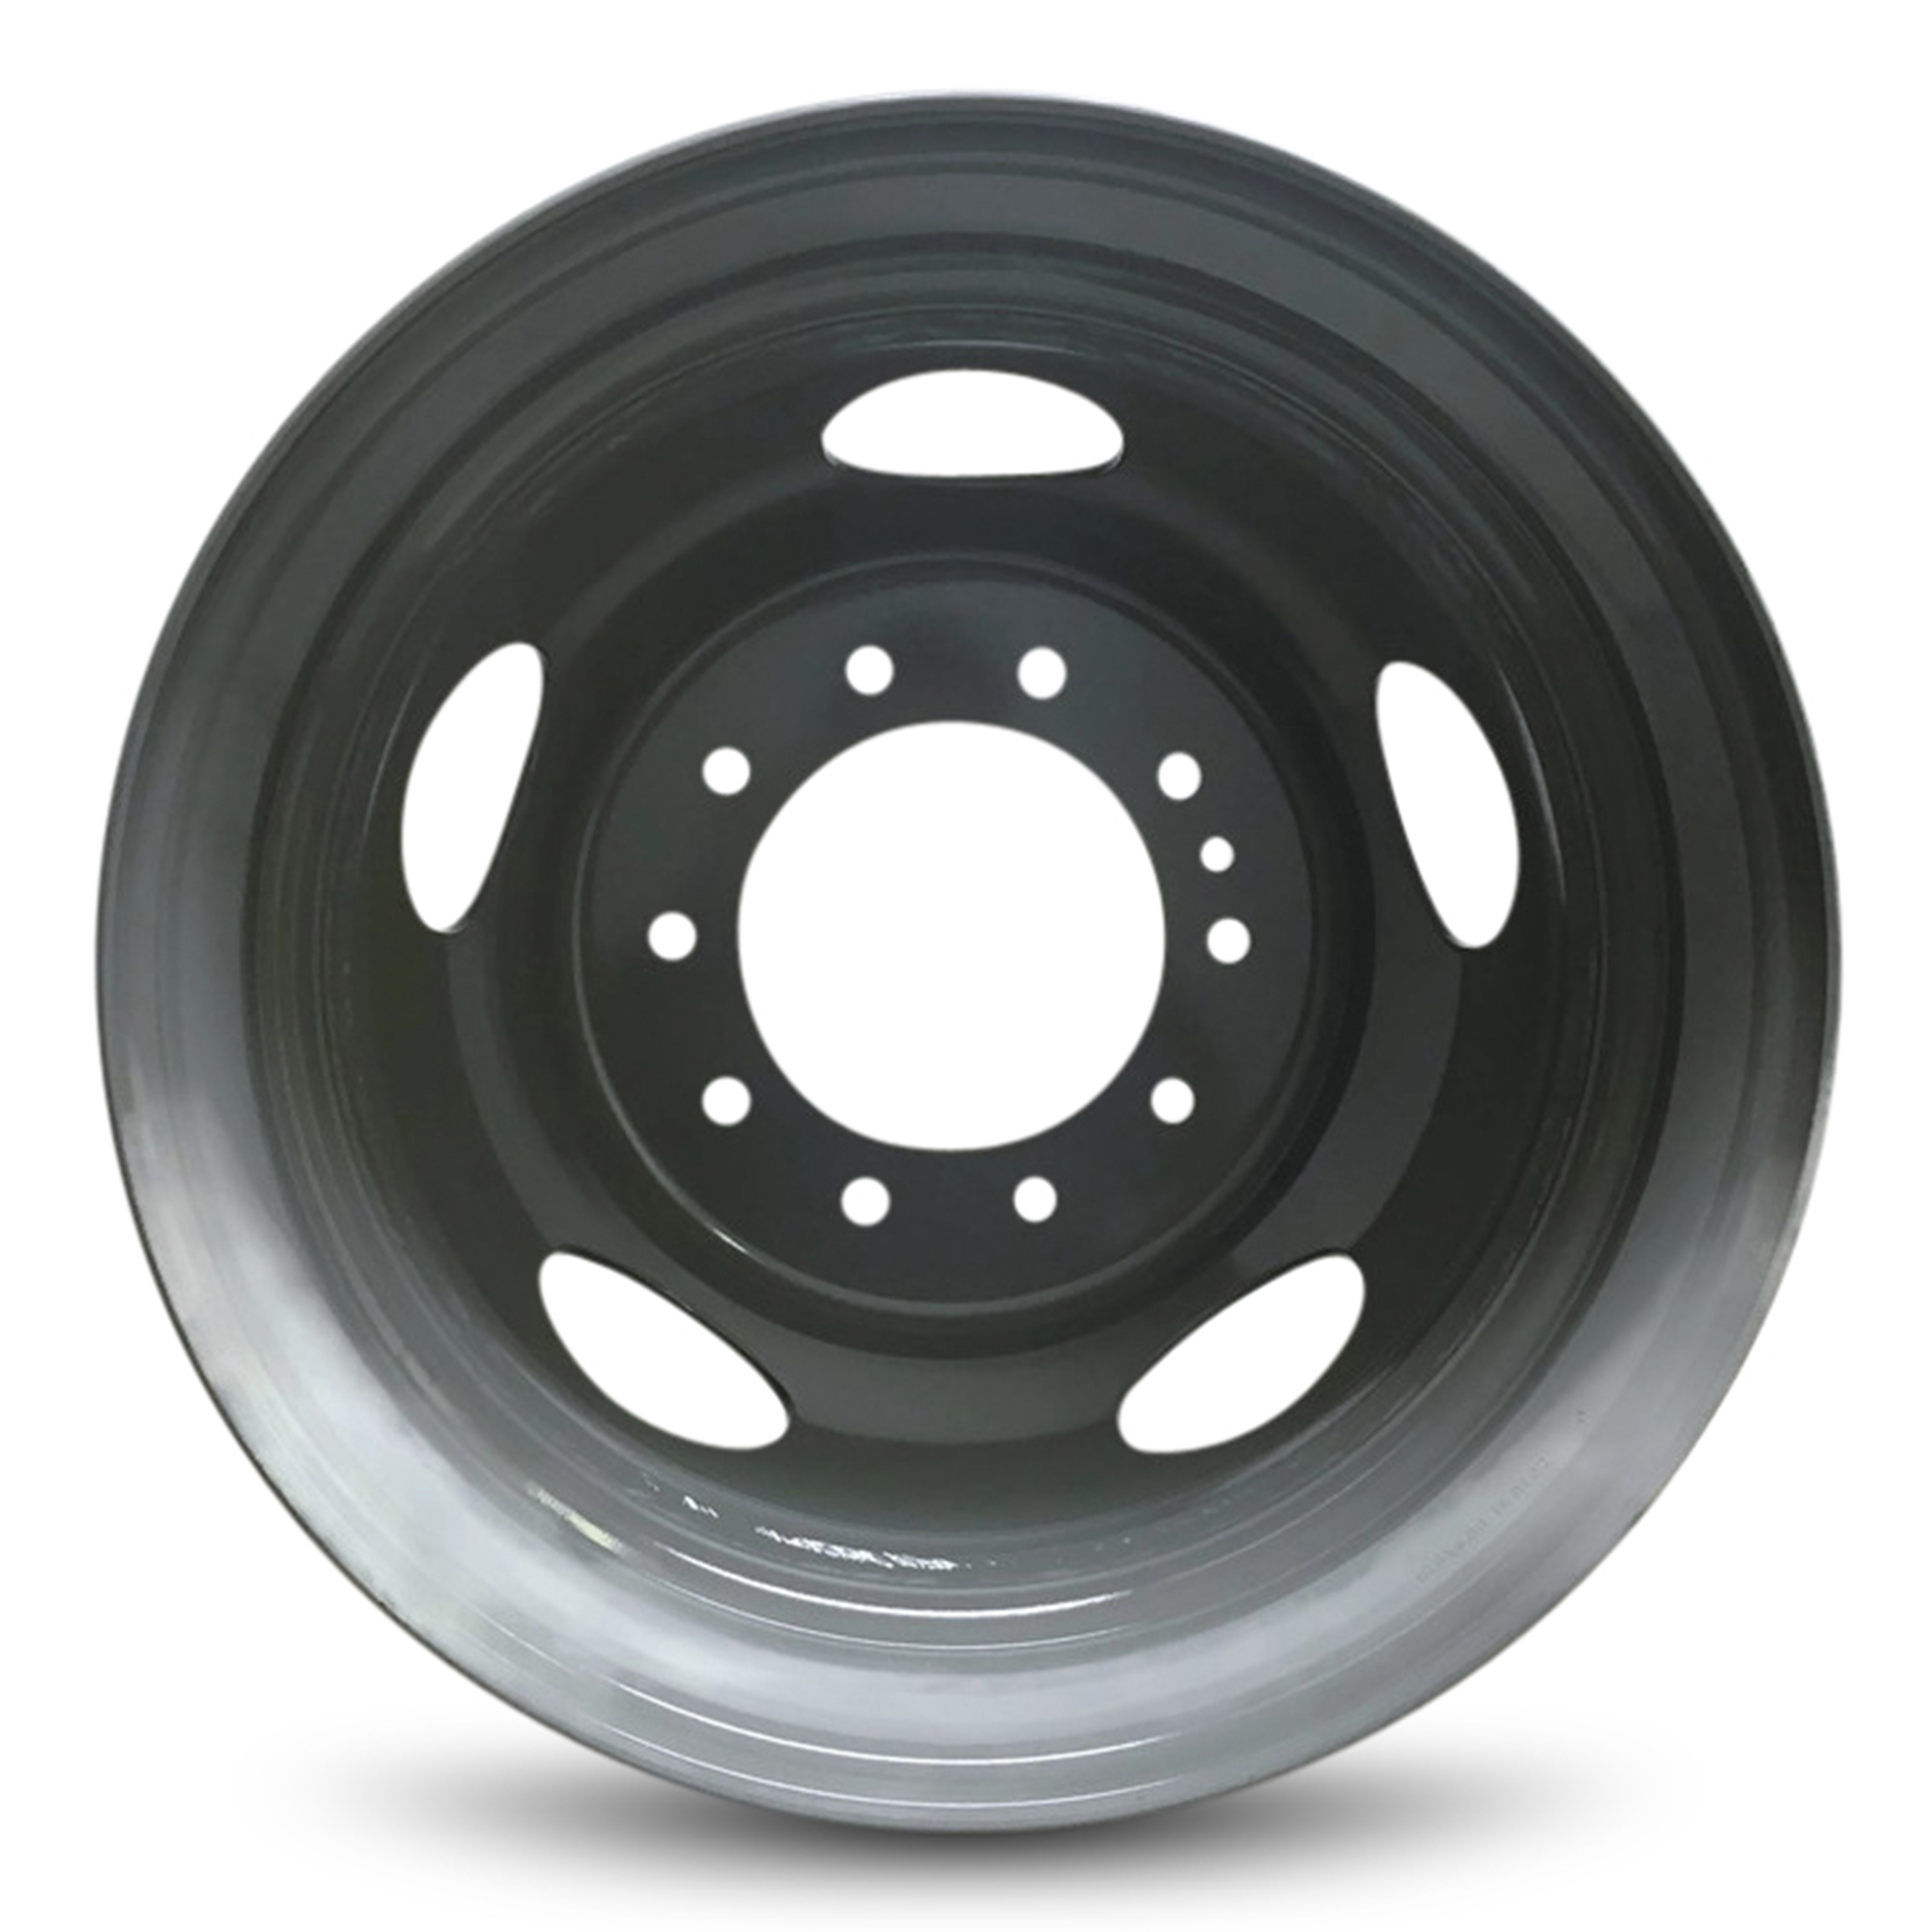 19.5 Dodge Ram 5500 Steel Rim / Wheel